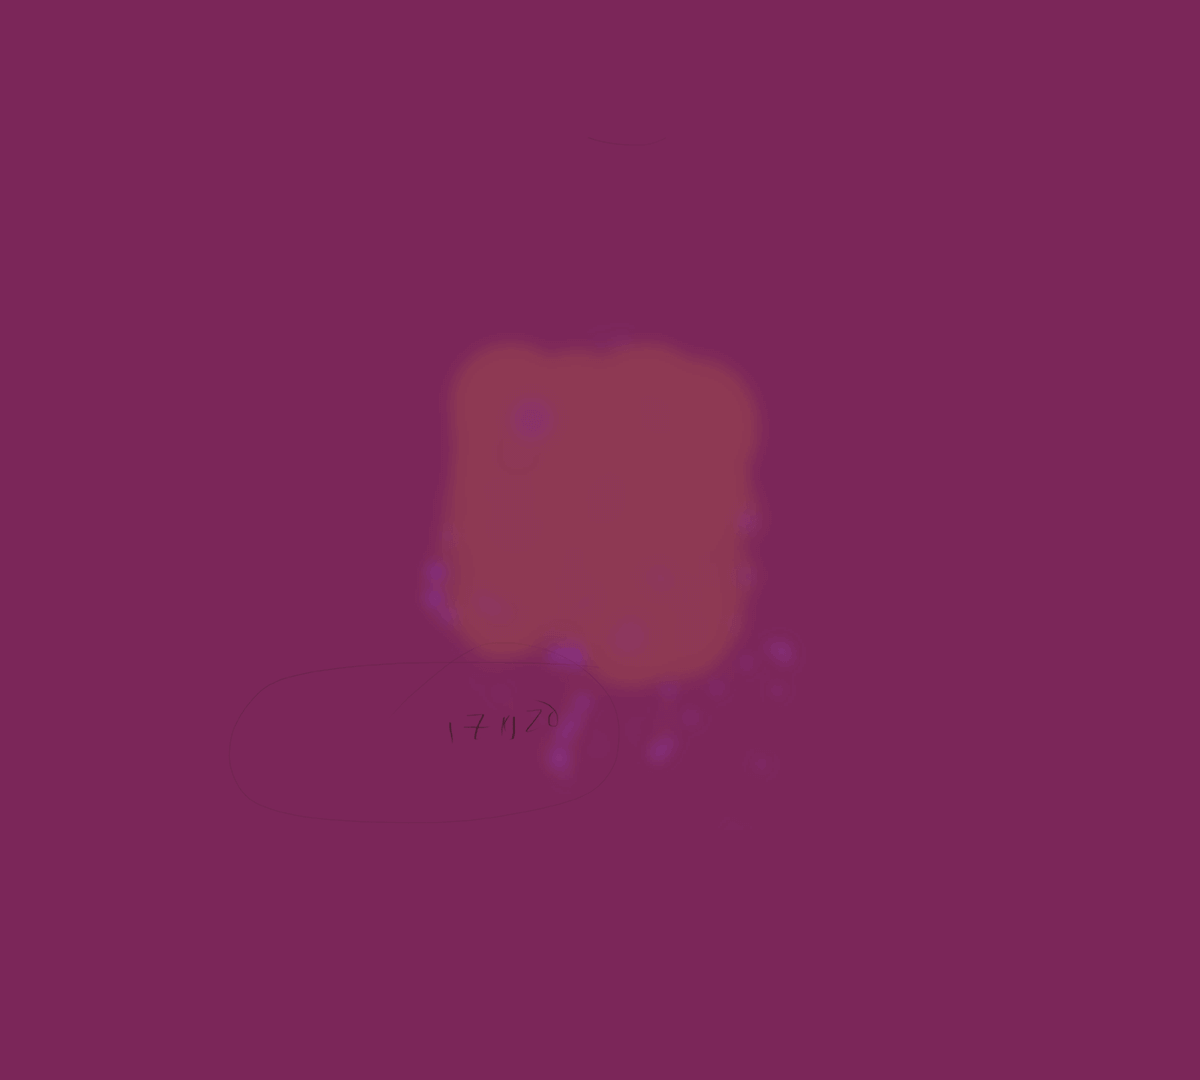 Evaporating browser stains in Rothko sienna on deep magenta background.